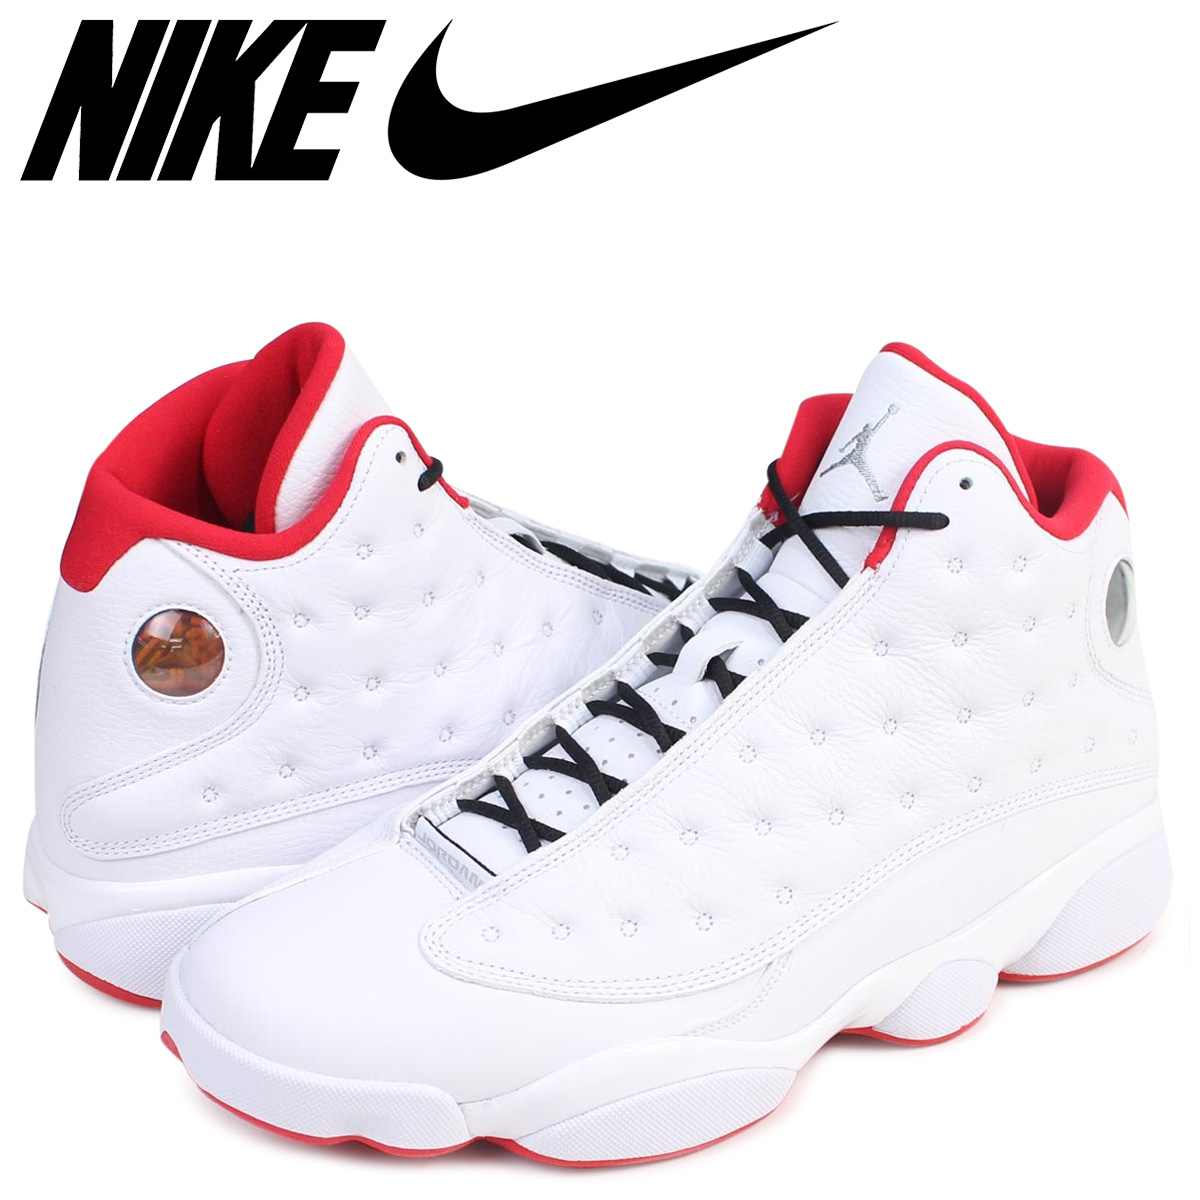 official photos b6ce0 89ca7 NIKE Nike Air Jordan 13 nostalgic sneakers AIR JORDAN 13 RETRO 414,571-103 men s  shoes white